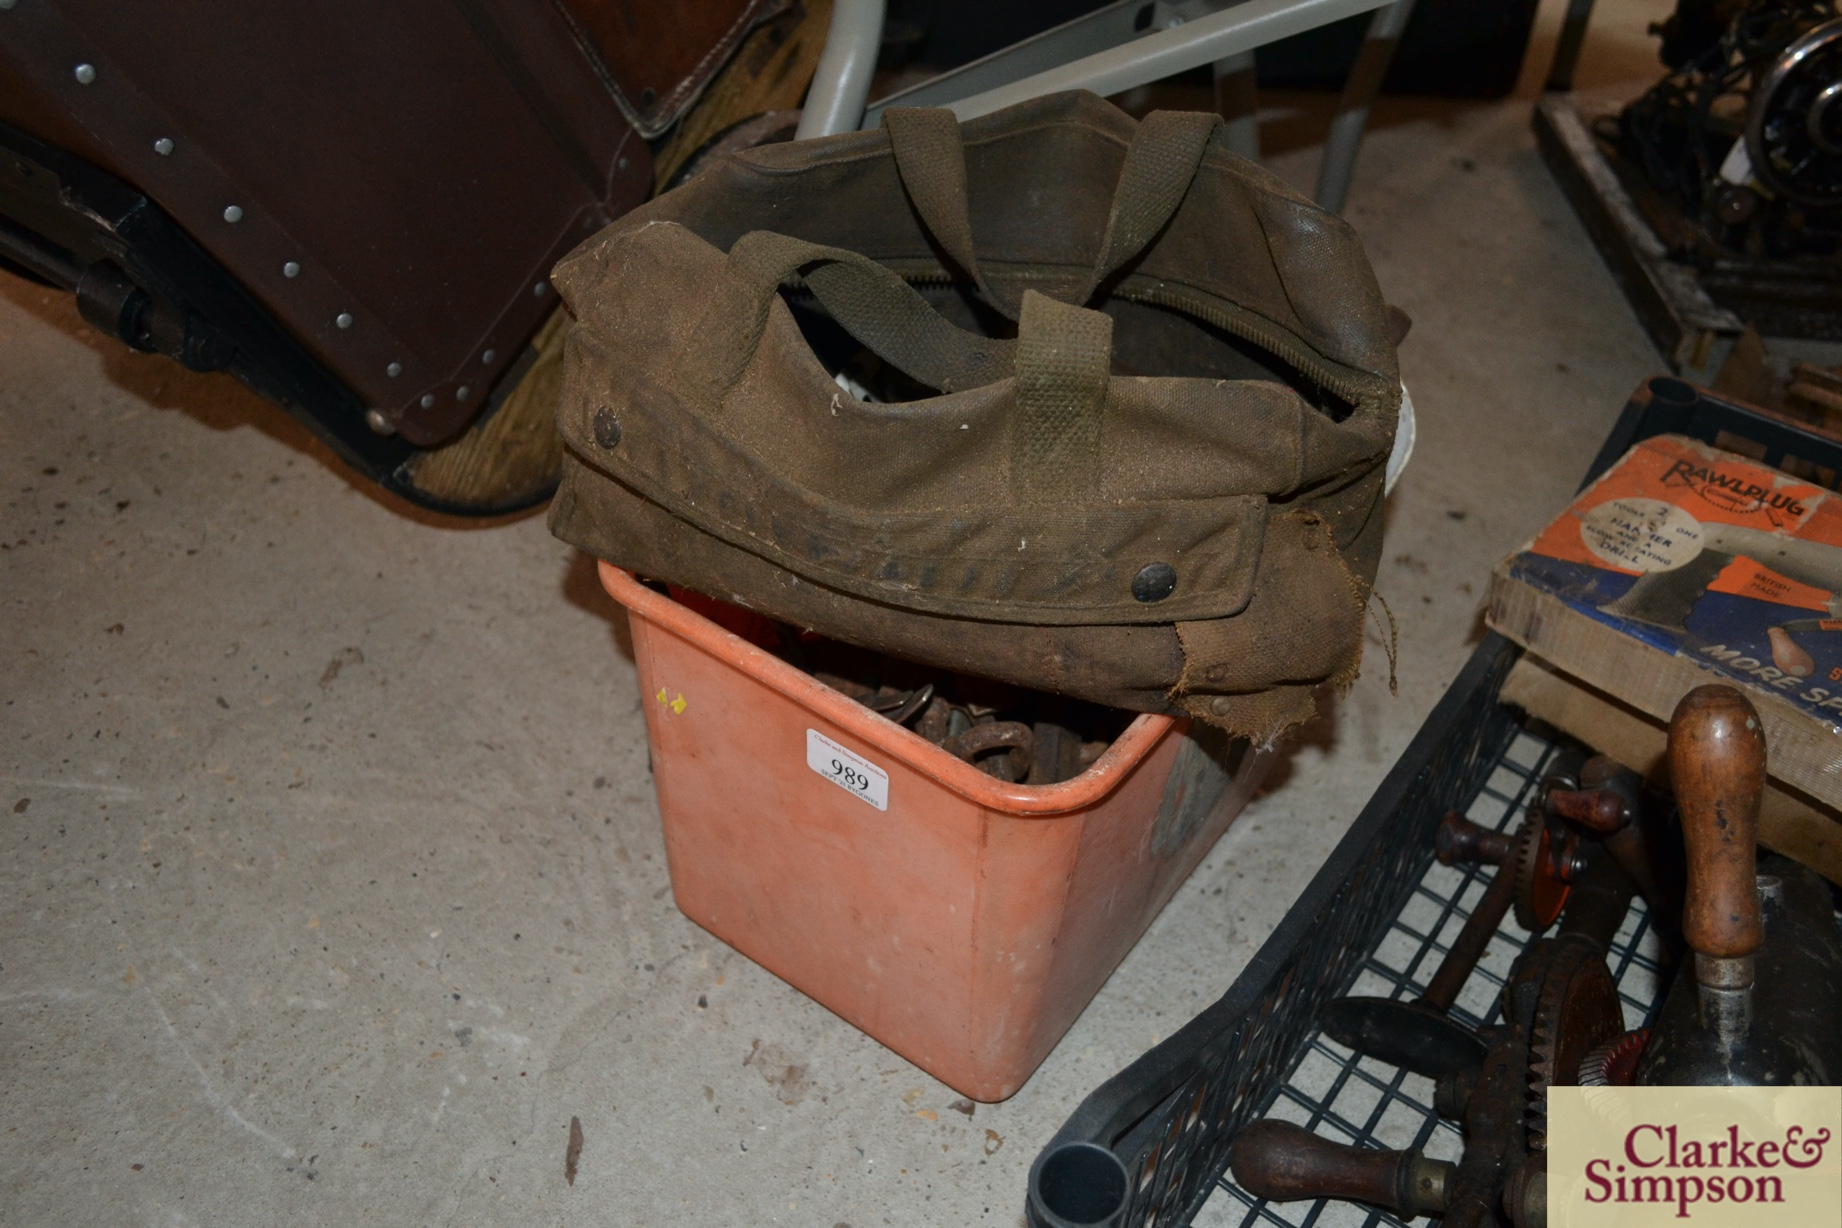 A bucket of various tools and a canvas bag of tool